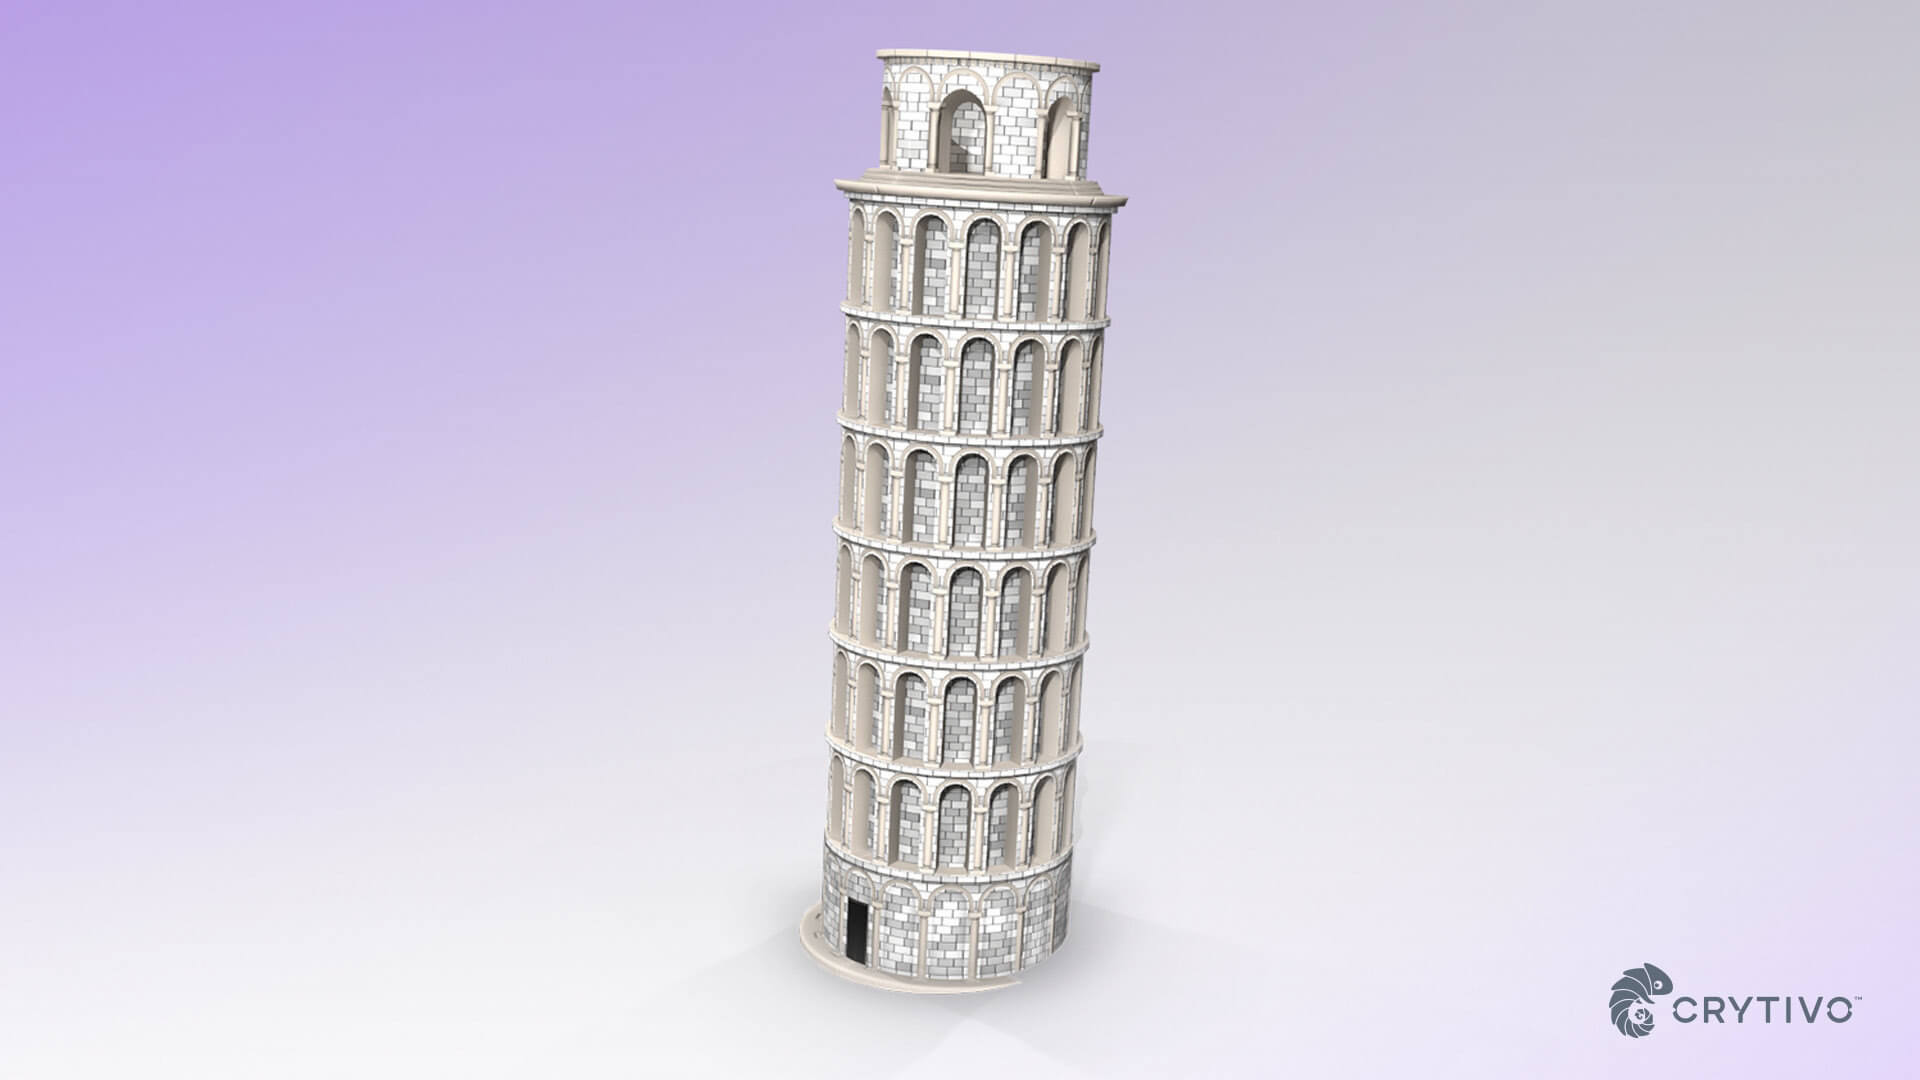 the universim extraterrestrial update leaning tower screenshot